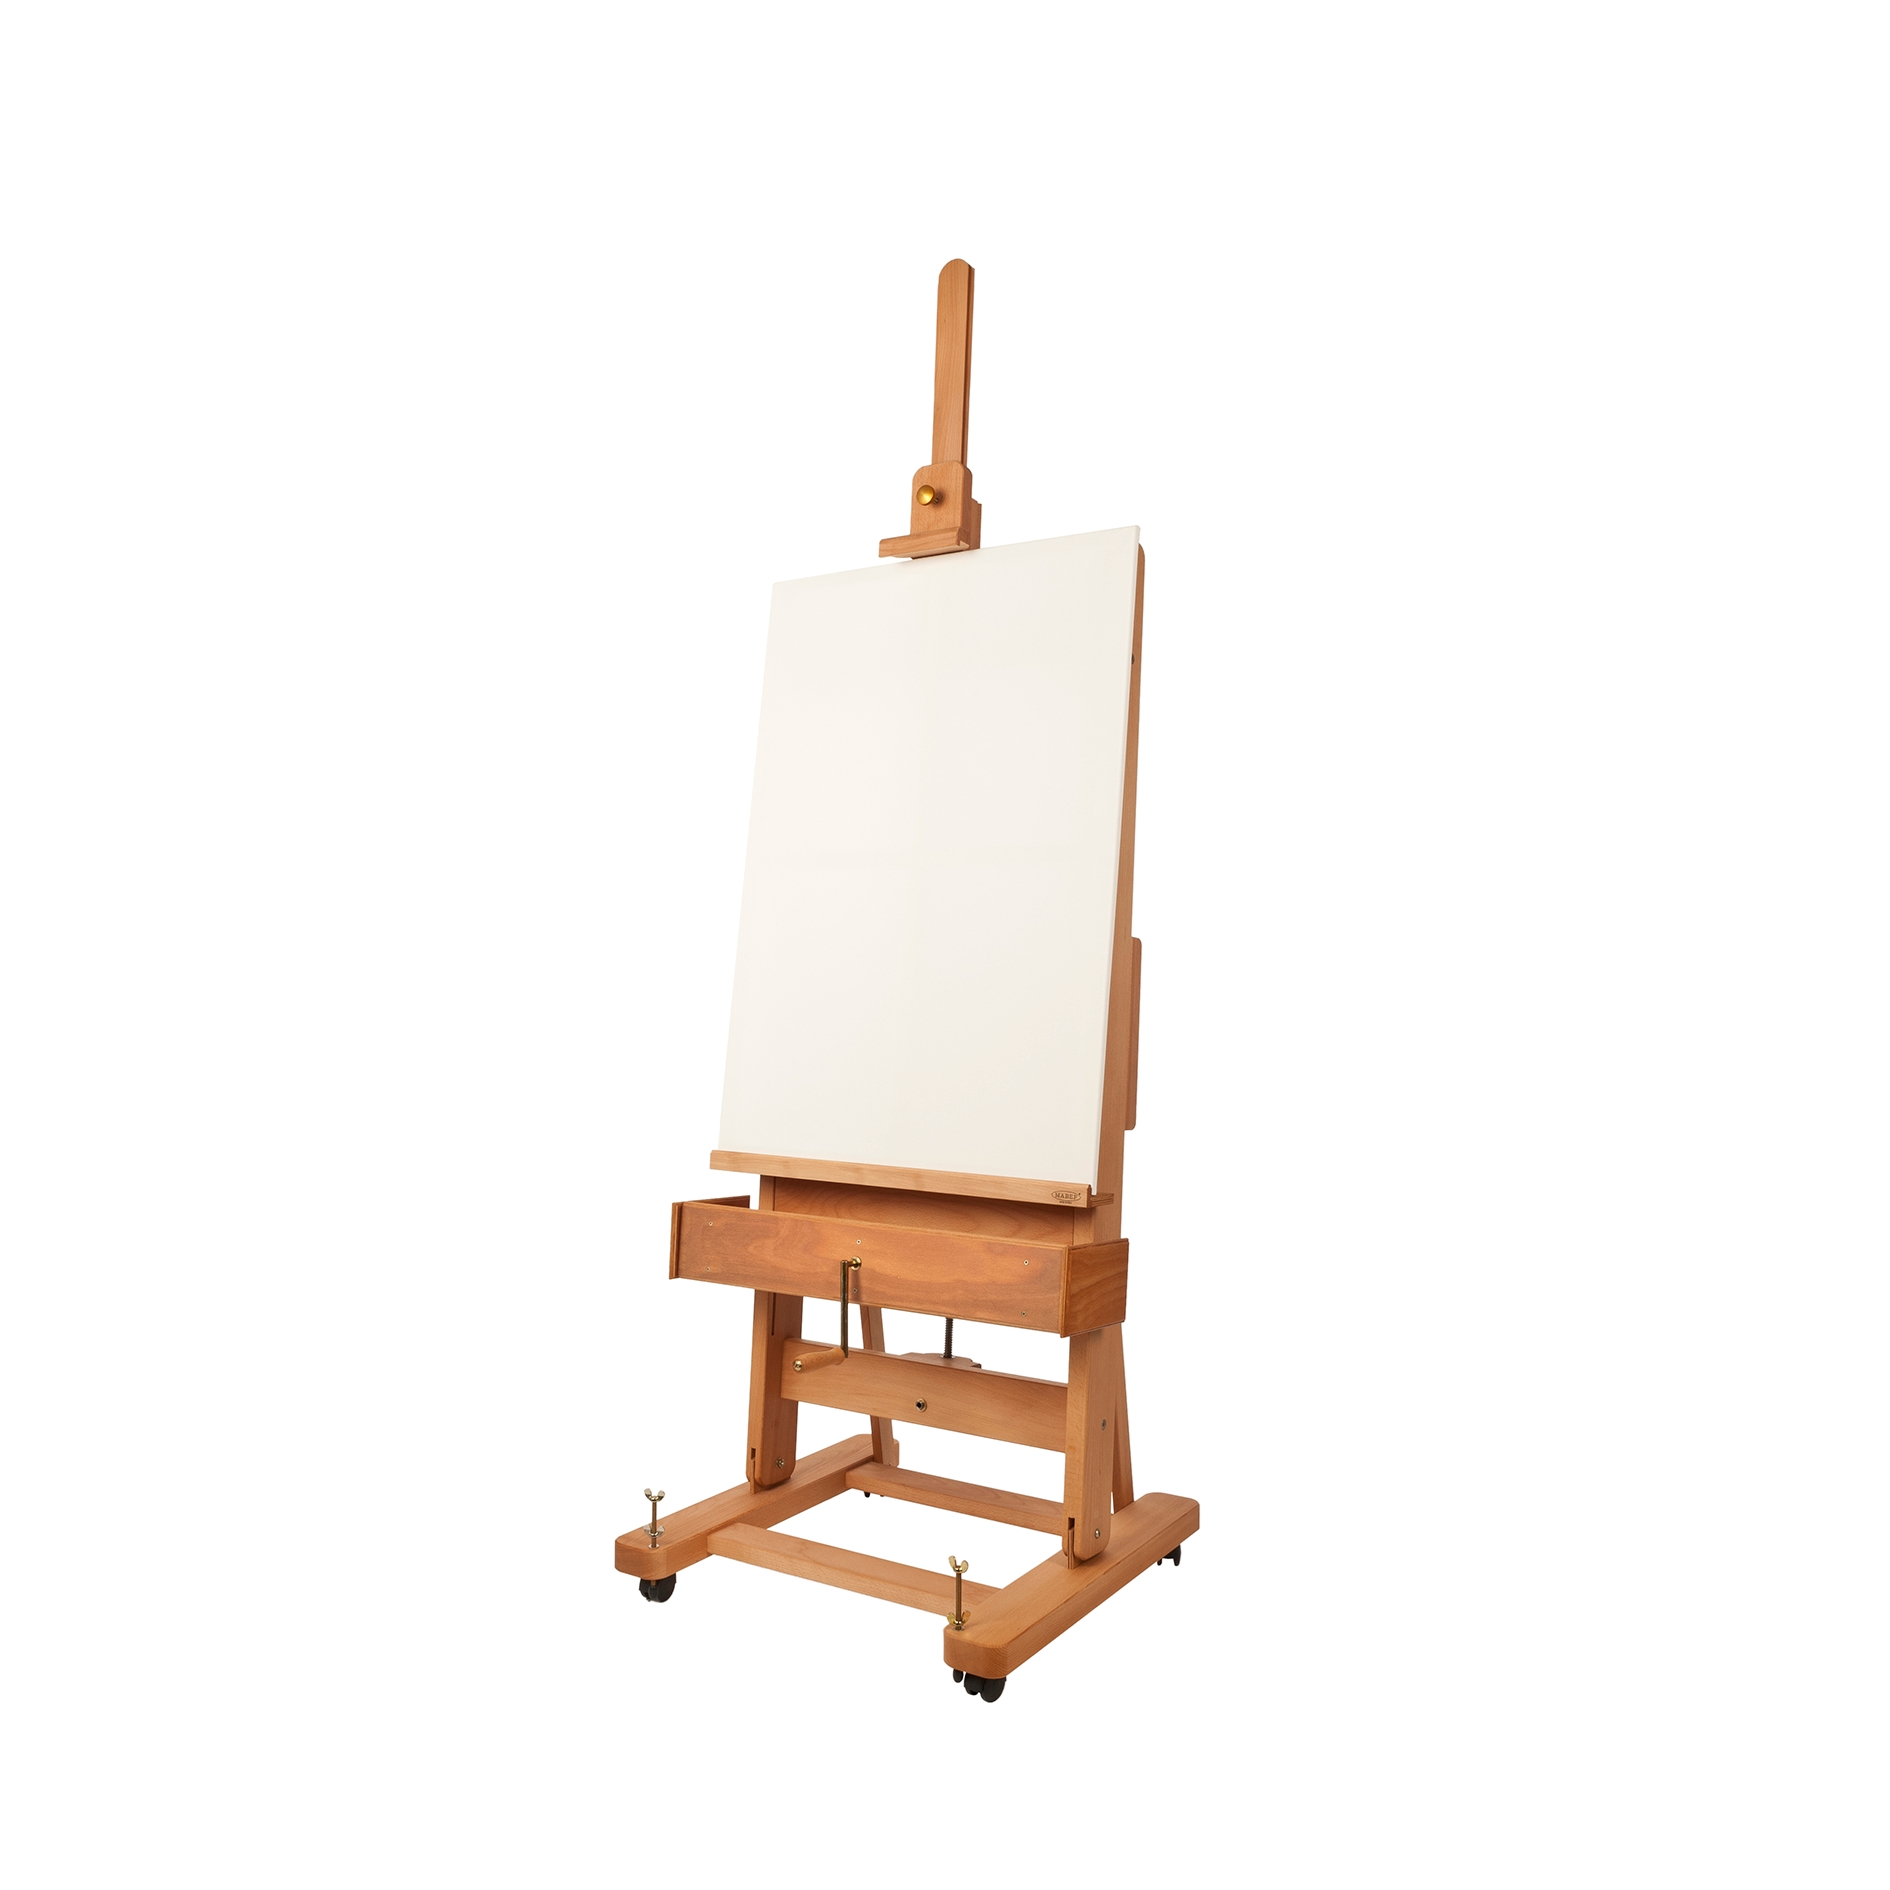 MABEF M-04 PLUS Studio easels are available from our warehouse and online at The PaintBox, home of the widest range of traditional and progressive Art Supplies in Adelaide. At The PaintBox we source and stock quality art supplies which we import directly. This means that you have access to a greater variety and pay less. These are perfect for any artists from amateur to professional. They are also perfect for any budget size. Check out our loyalty rewards programme, which makes your artistic ambitions achievable. At these prices why not give these a go. Be sure to check out our other fabulous finds on our website and start saving today. Our knowledgeable staff at The PaintBox can guide you through our carefully selected ranges of art supplies for all applications. This is only a small selection of our stock. We sell many brands, weights, and textures, in-store only. Please call 08 8388 7776 to enquire. We offer art tuition too! MABEF M04 PLUS STUDIO EASELS CAN BE DELIVERED ANYWHERE WITHIN AUSTRALIA OR NEW ZEALAND